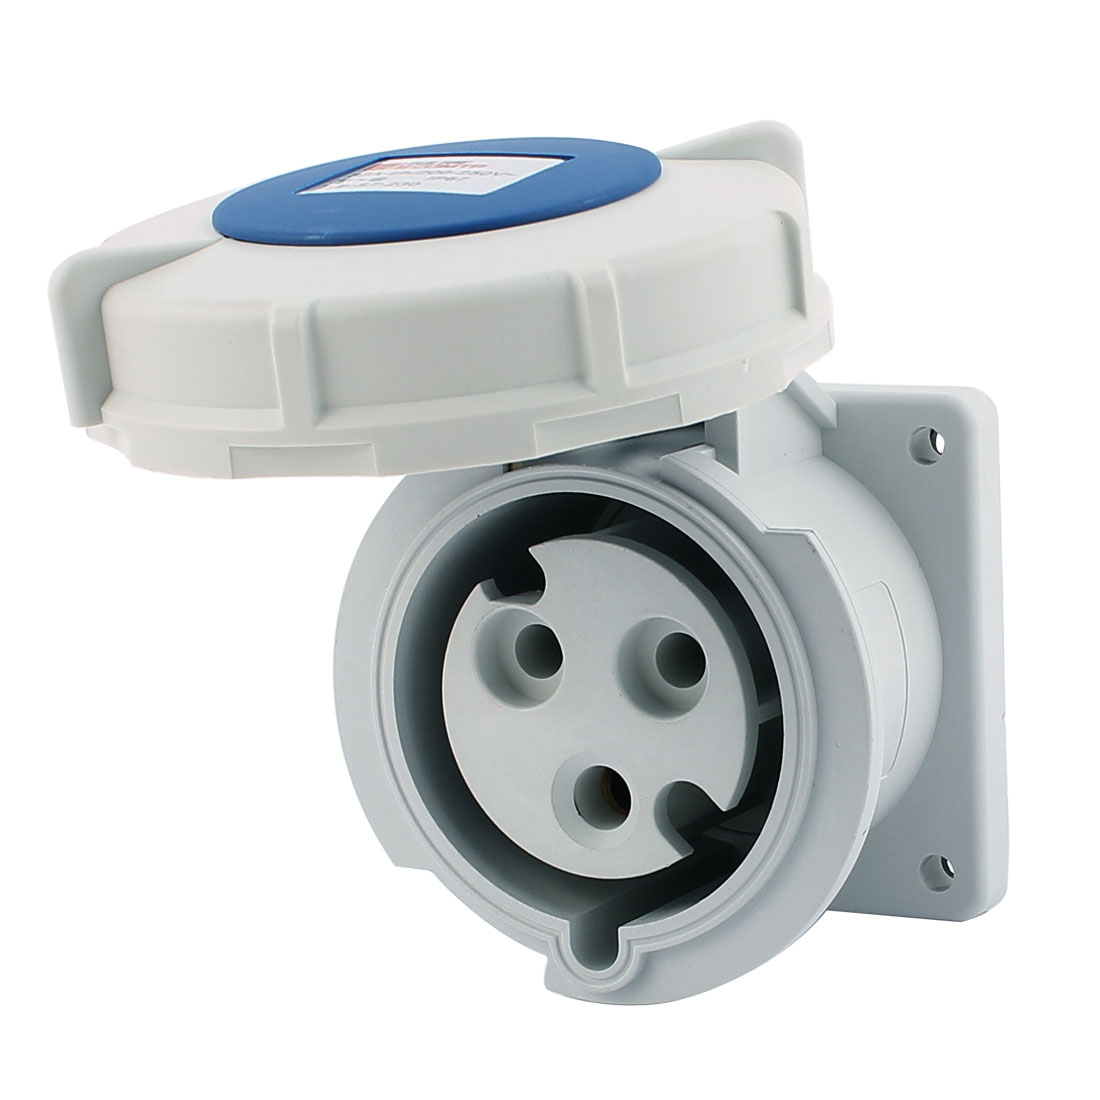 AC 200V-250V 32A IP67 2P+E 3-Terminal Female Industrial Straight Socket